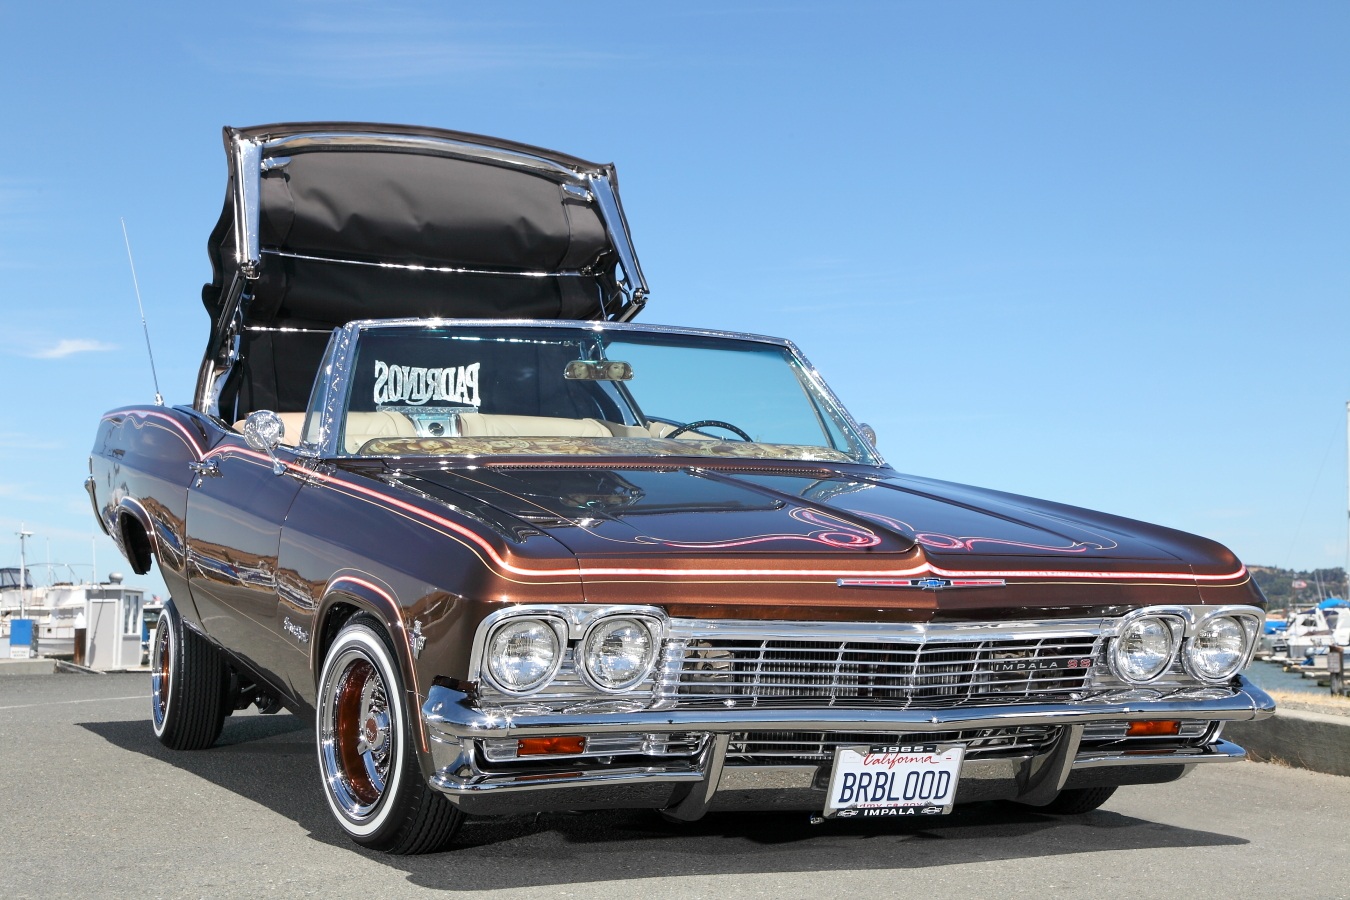 65 impala lowrider convertible galleryhip com the hippest galleries